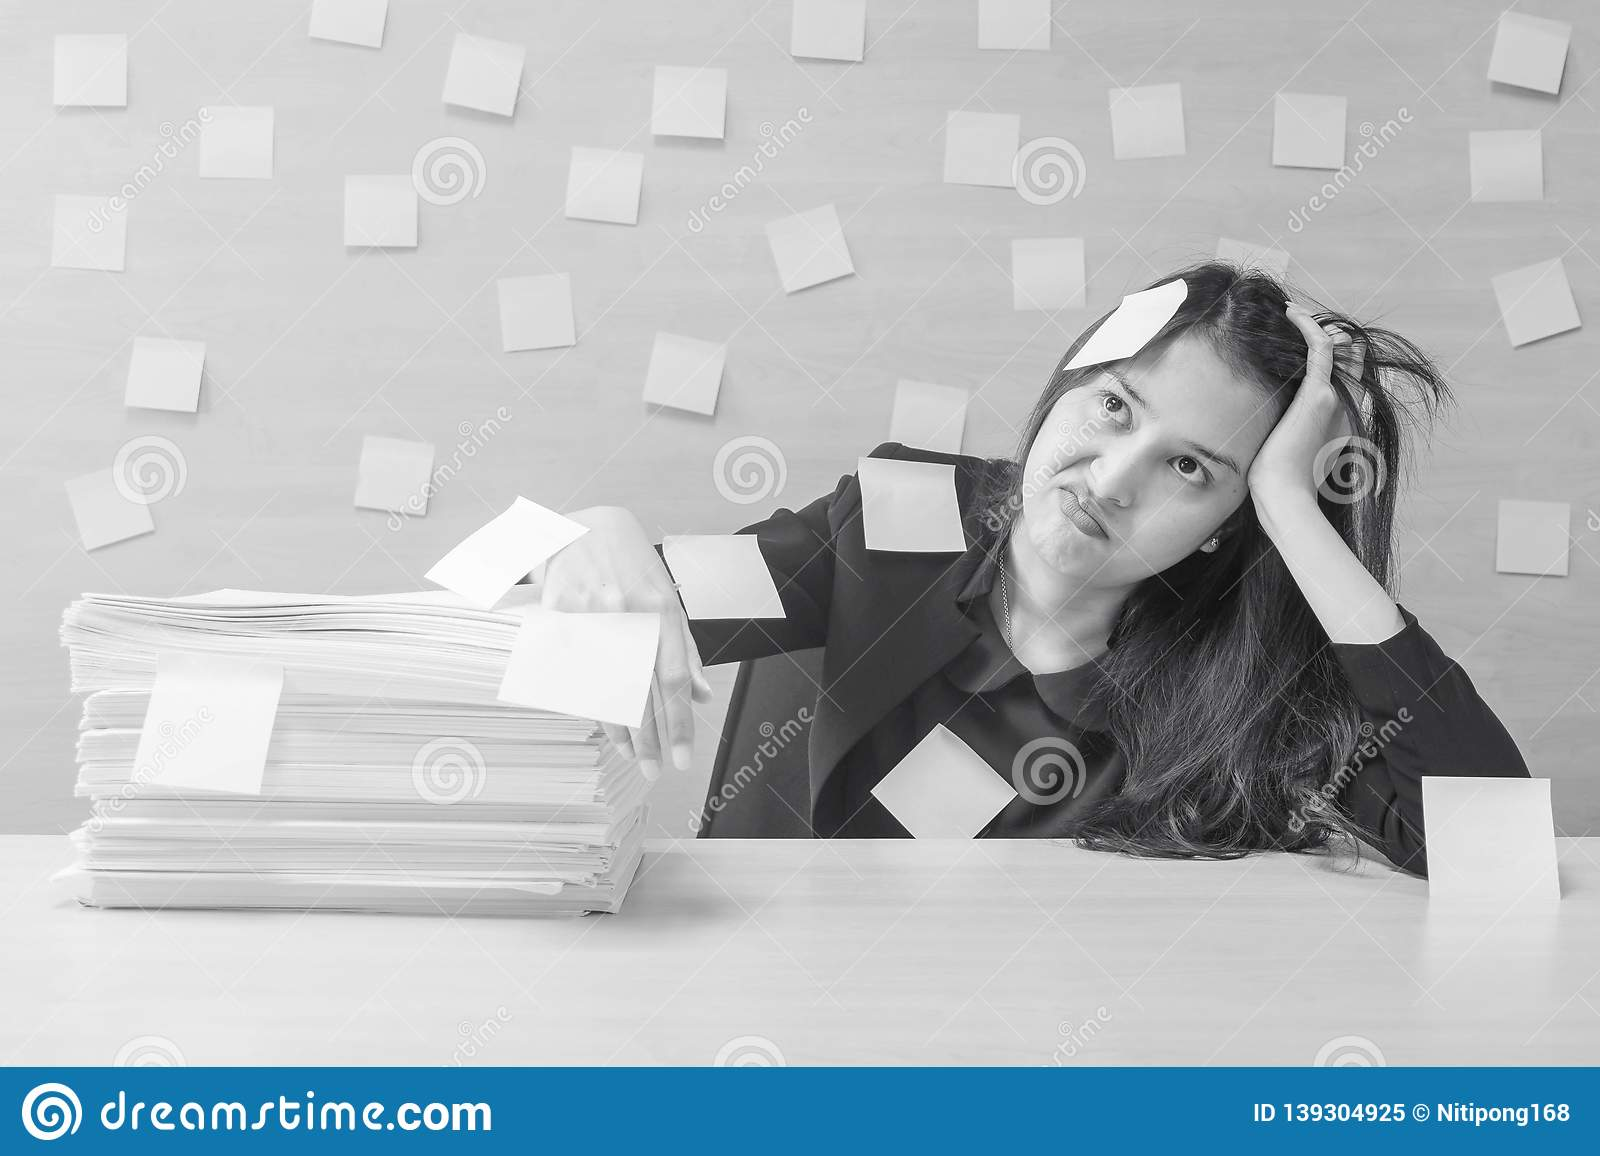 Closeup working woman are boring from hard work and pile of work paper in front of her in work concept on blurred wooden desk and